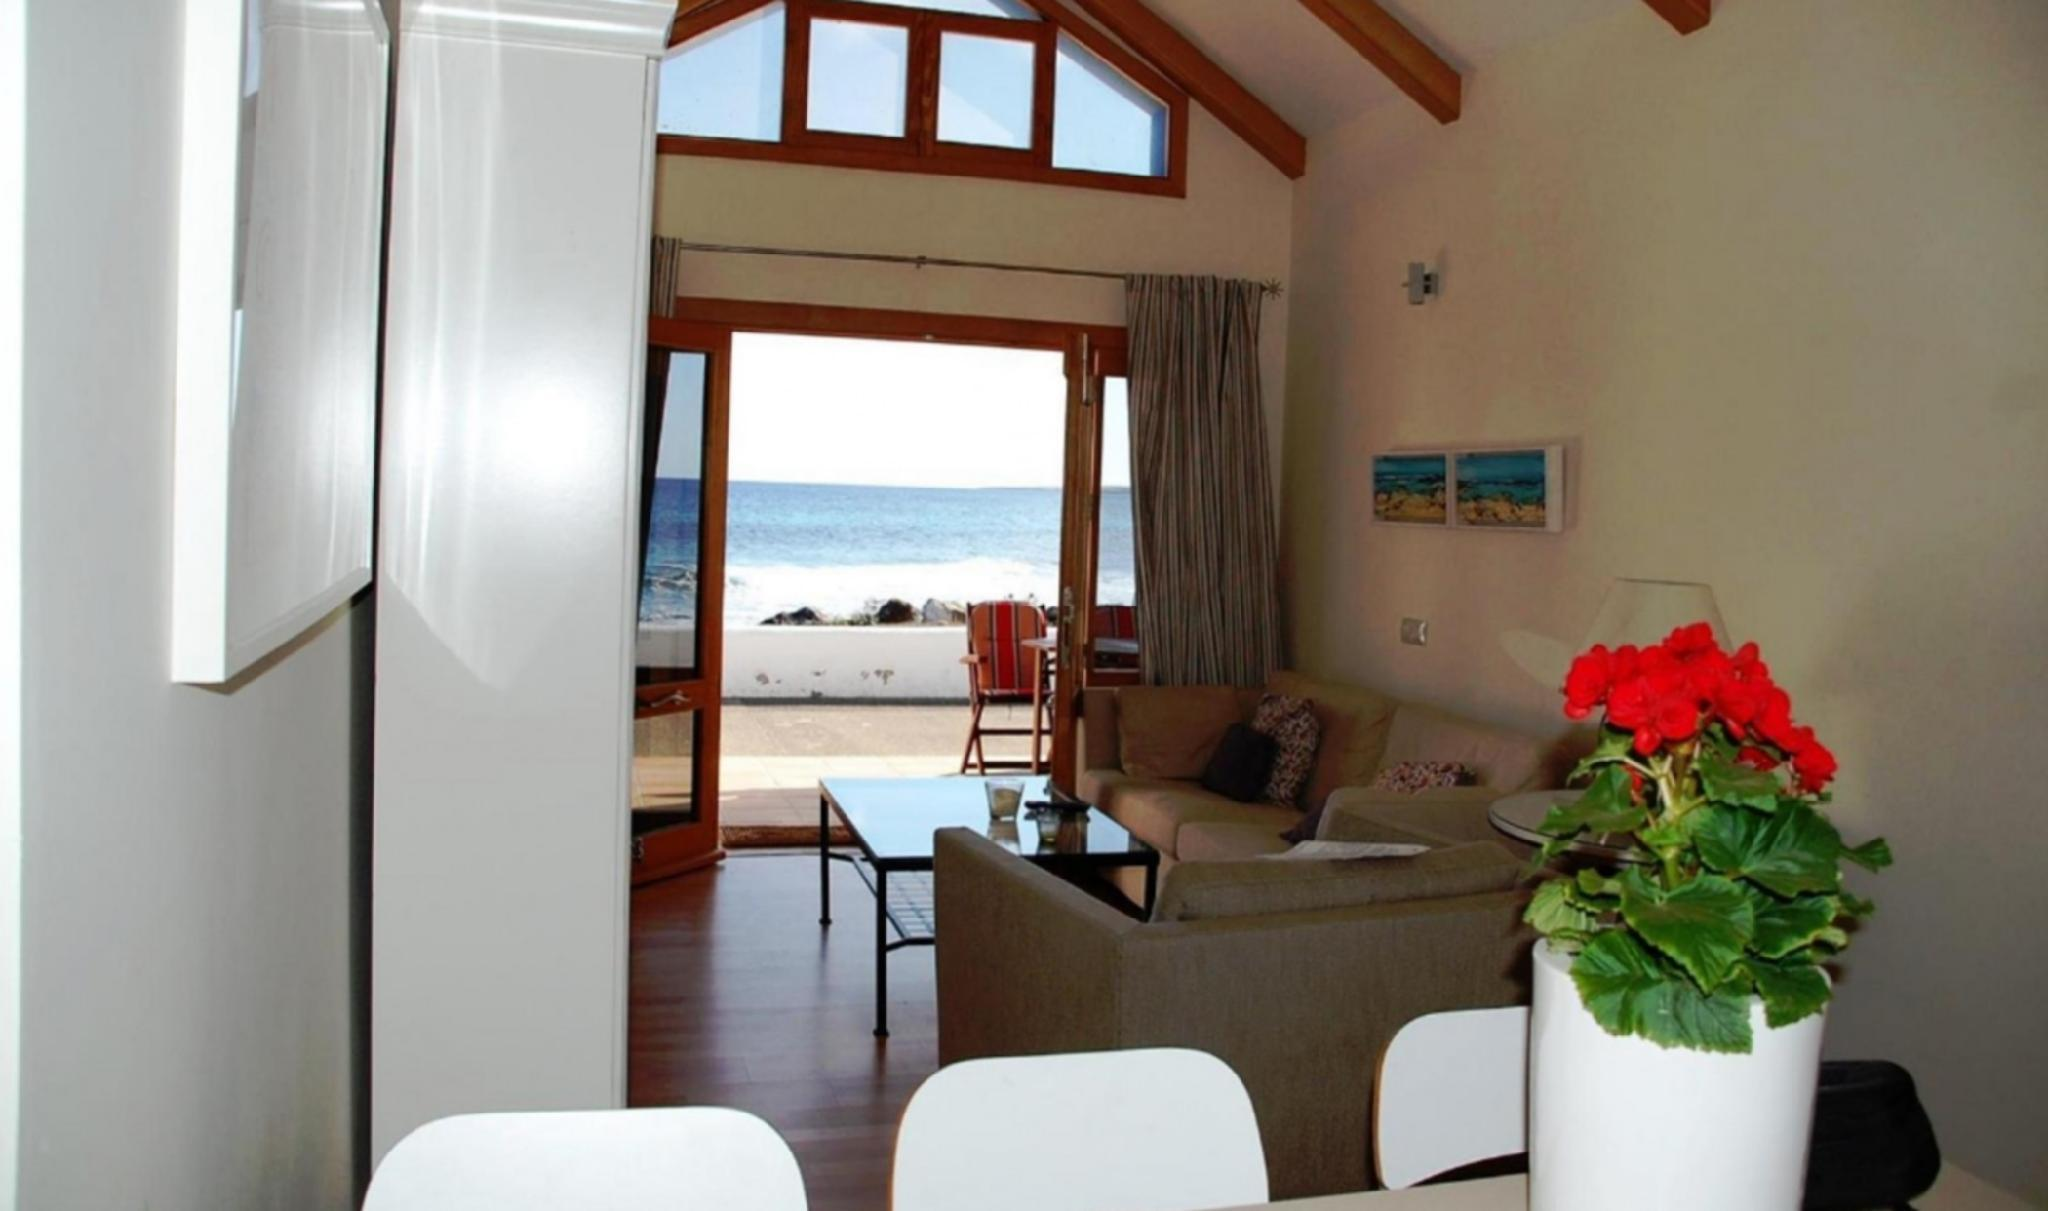 103086    House In Lanzarote